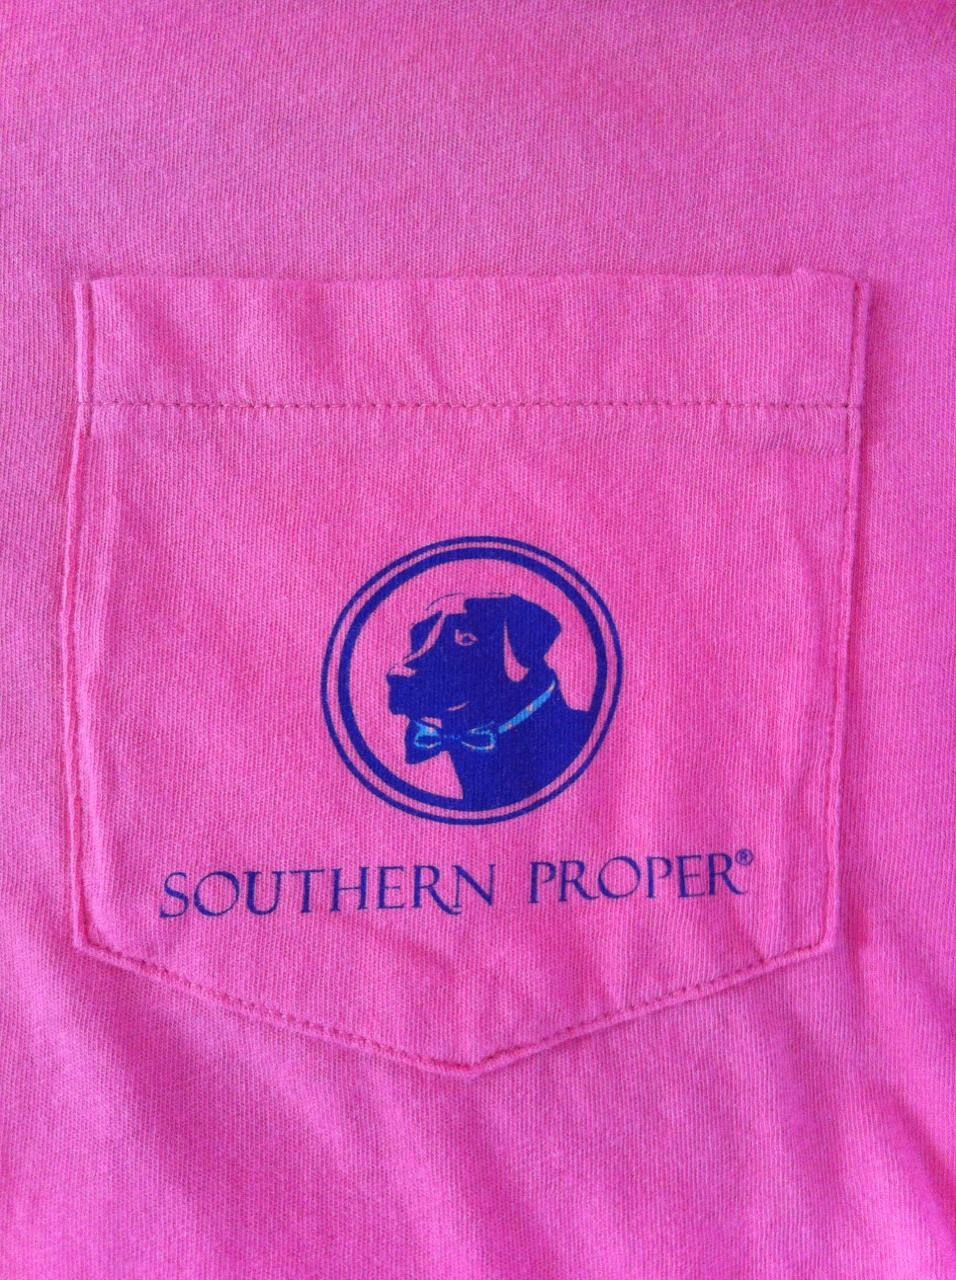 Southern Proper pink frocket | sweet tea & southern things ...